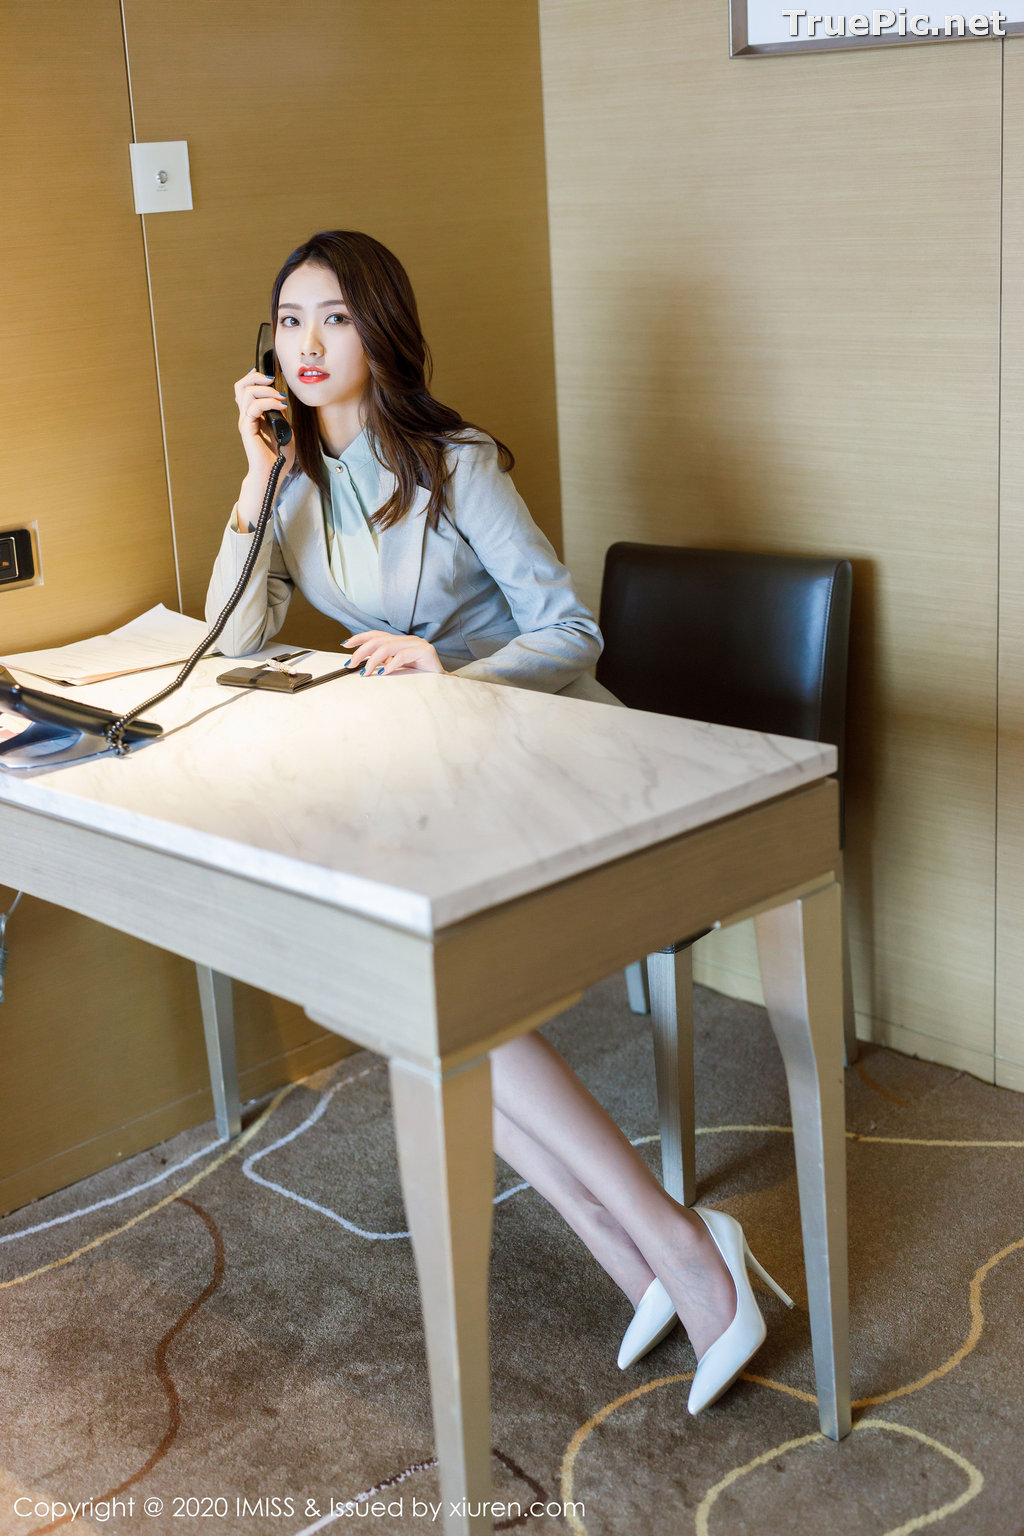 Image IMISS Vol.466 - Chinese Model - Fang Zi Xuan (方子萱) - Sexy Office Girl - TruePic.net - Picture-6